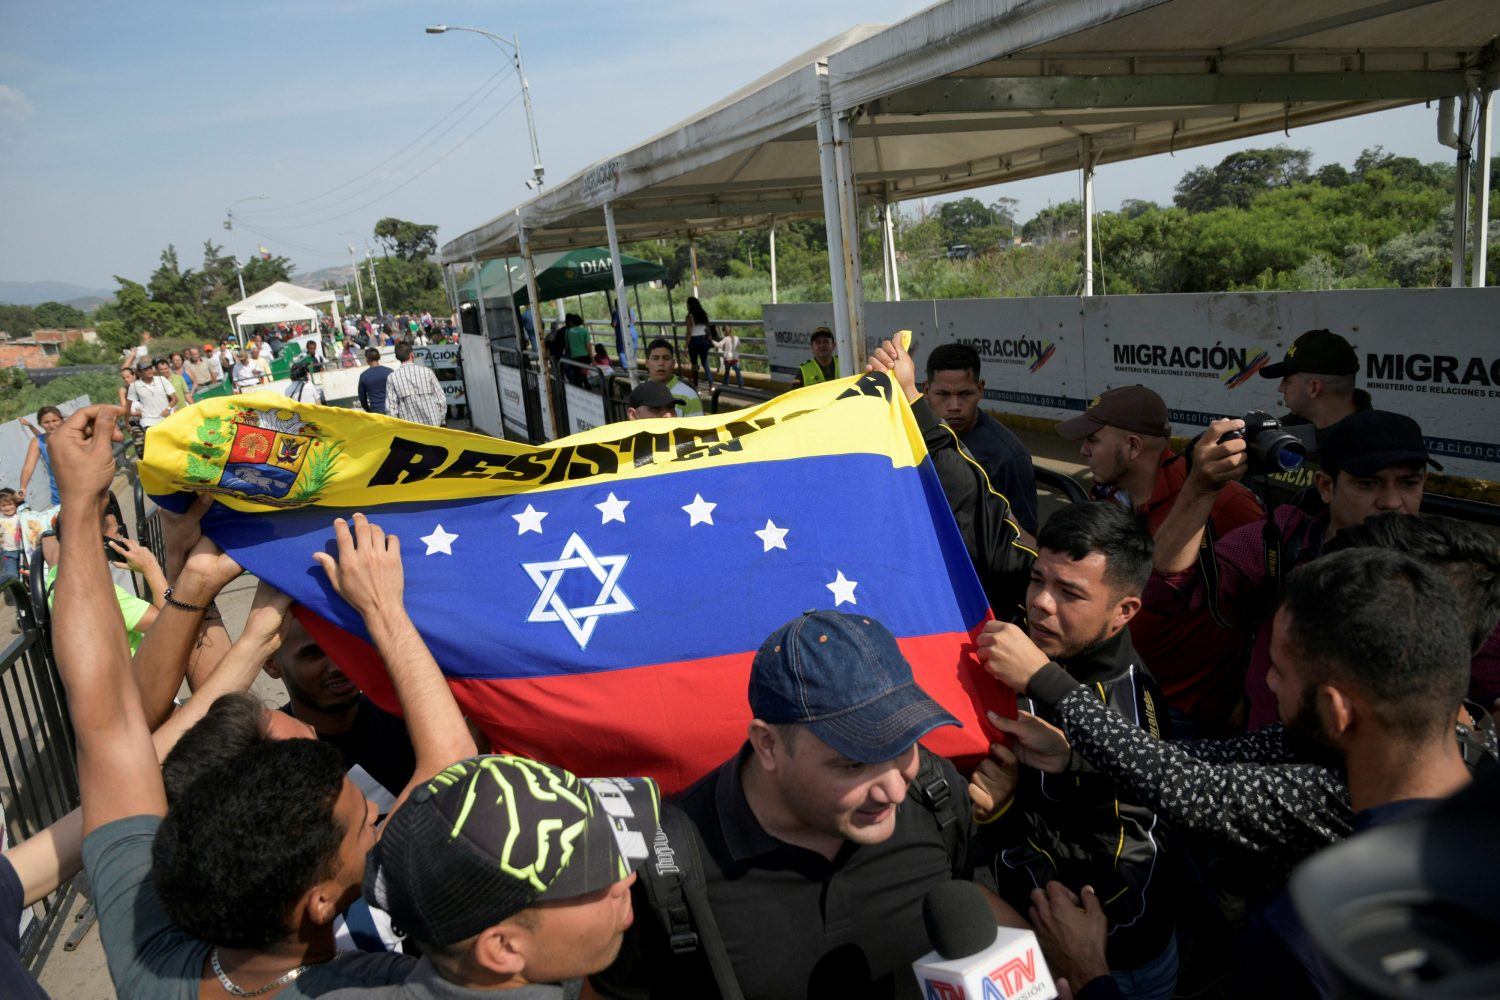 FILE PHOTO: People protest at the Simon Bolivar International border bridge between Colombia and Venezuela, on the outskirts of Cucuta, Colombia April 30, 2019. REUTERS/Juan Pablo Bayona/File Photo